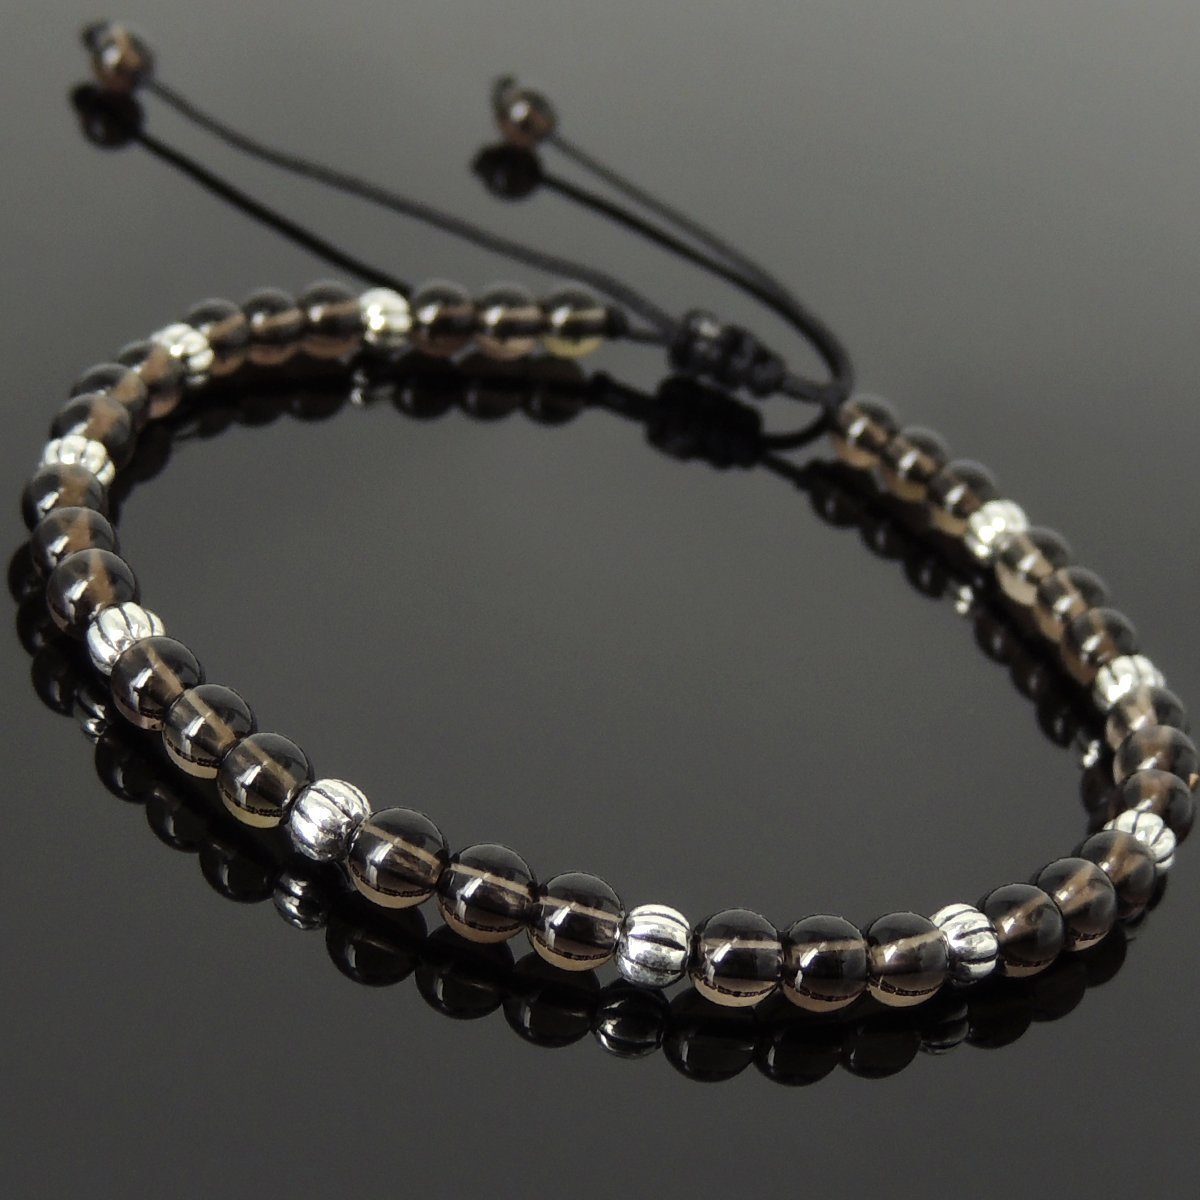 Men and Women Adjustable Braided Drawstring Bracelet Handmade with 4mm Smoky Quartz Small Beads and Genuine 925 Sterling Silver Beads